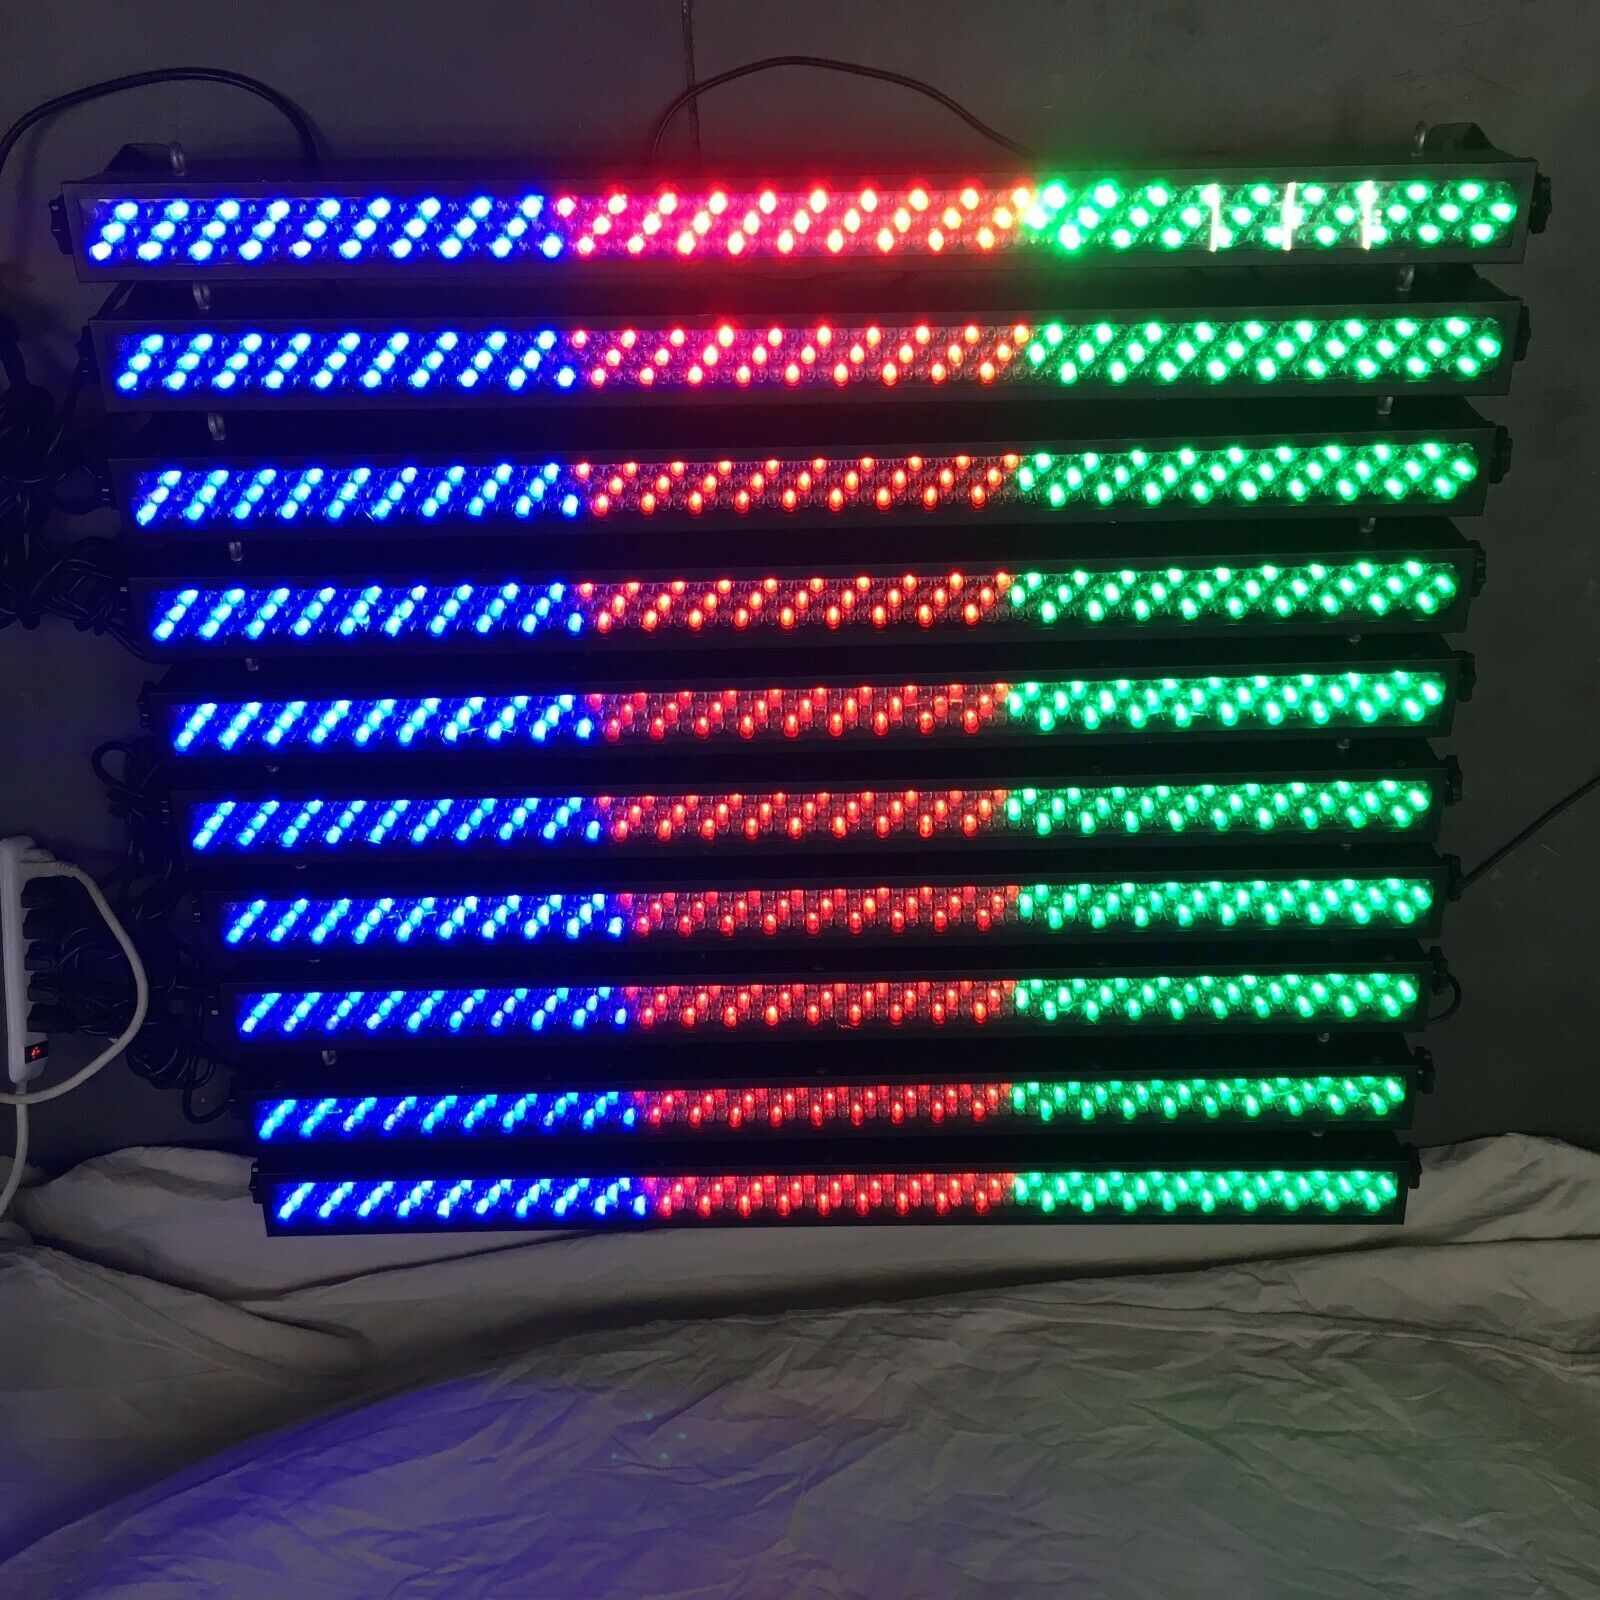 LED Wall Washer DJ Club Disco Bar DMX Light 252 10mm RGB LED USED GOOD 10 Avail - $75.00